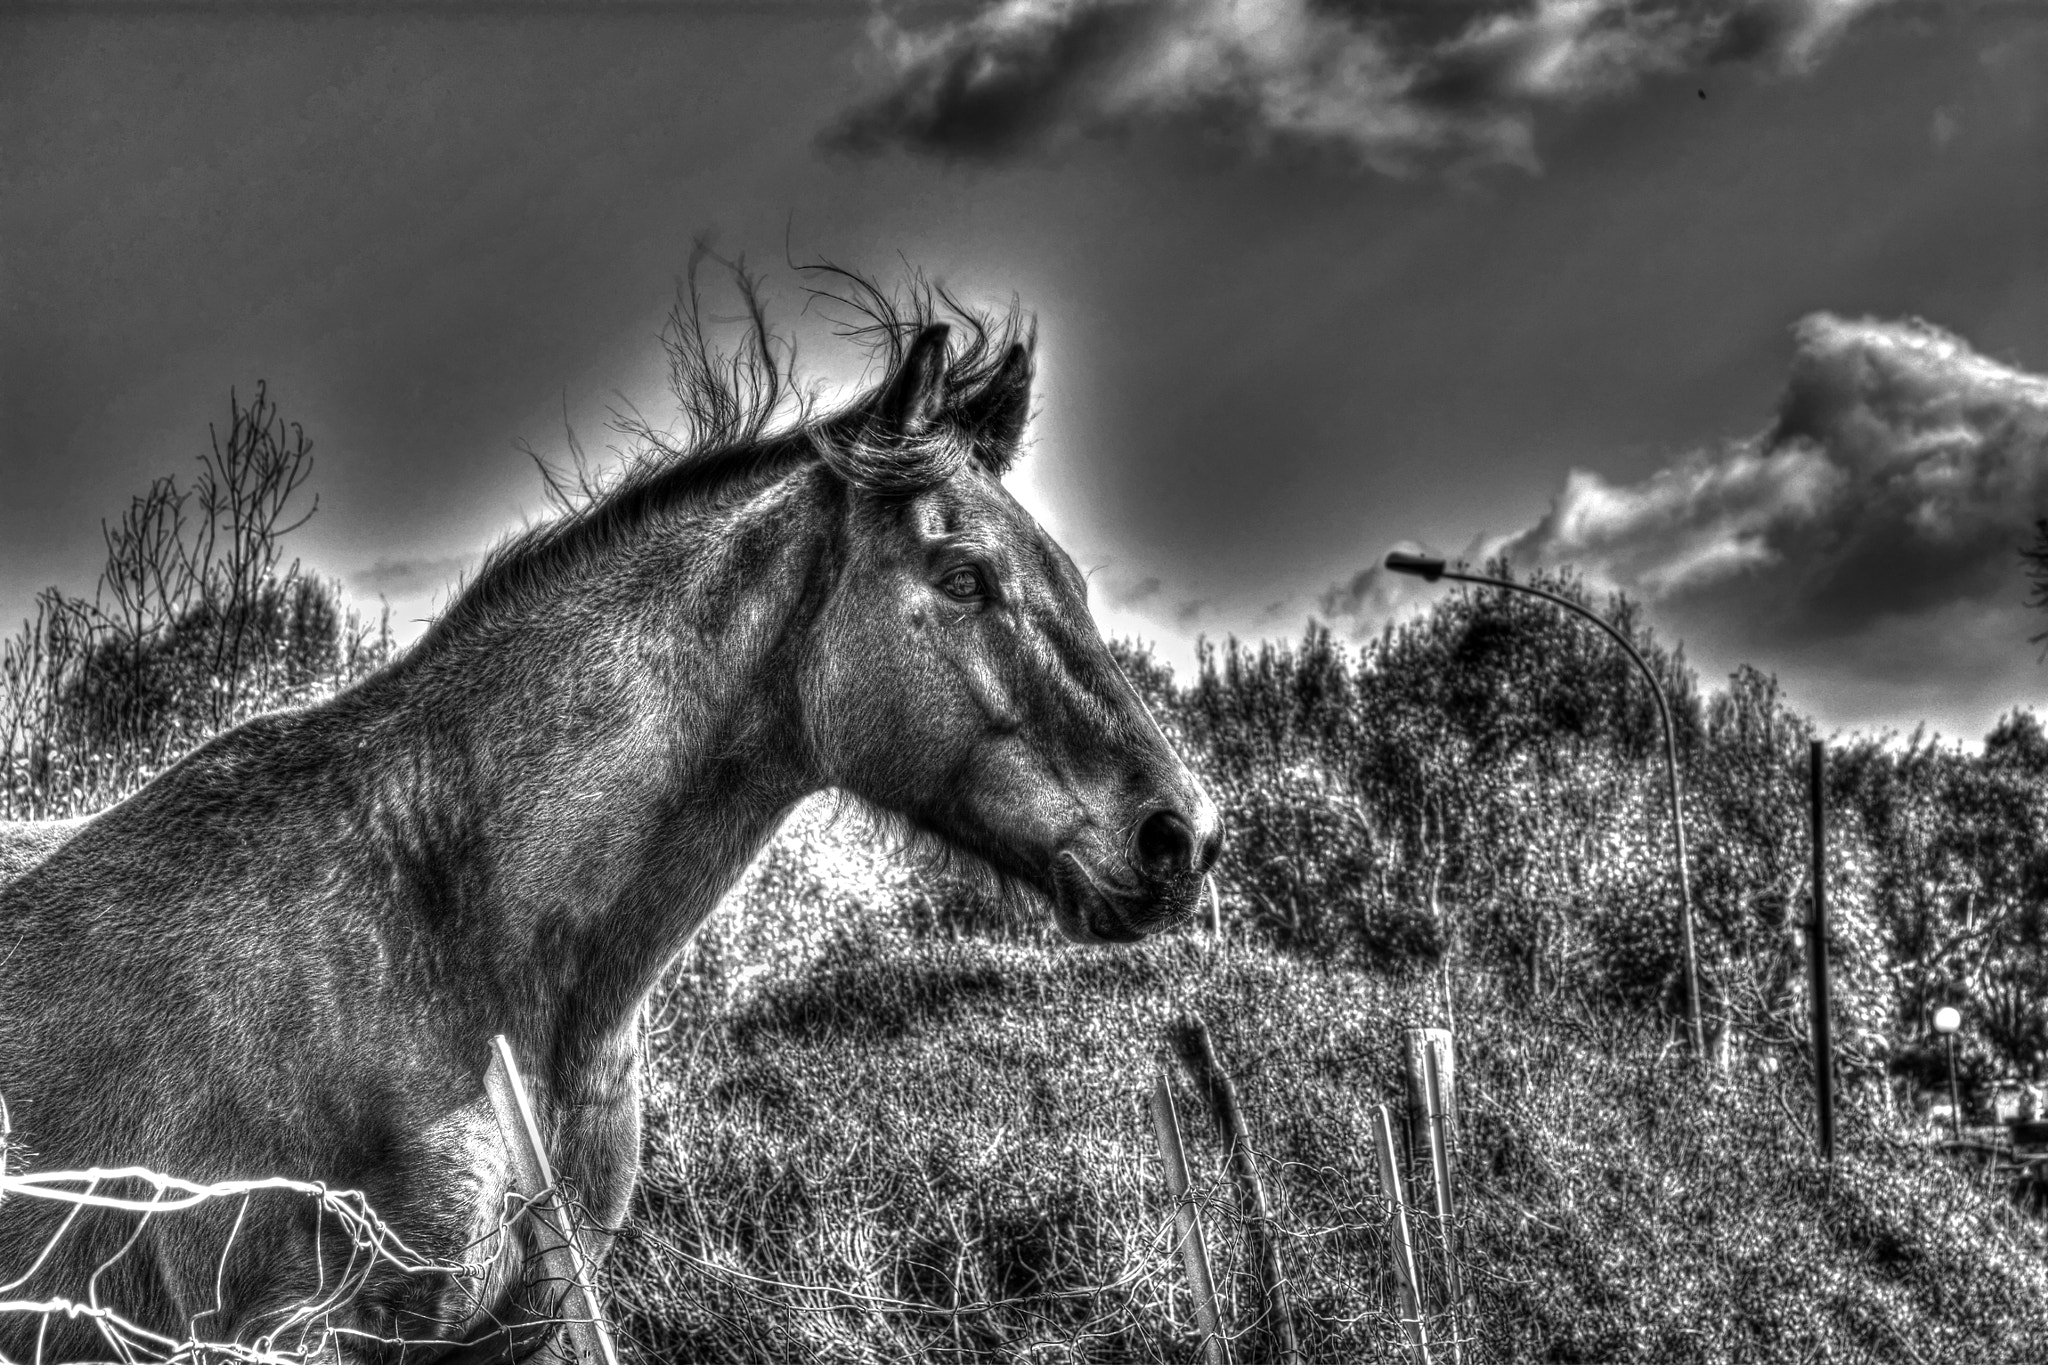 Photograph Cavallo HDR B\N by Marco Melis on 500px